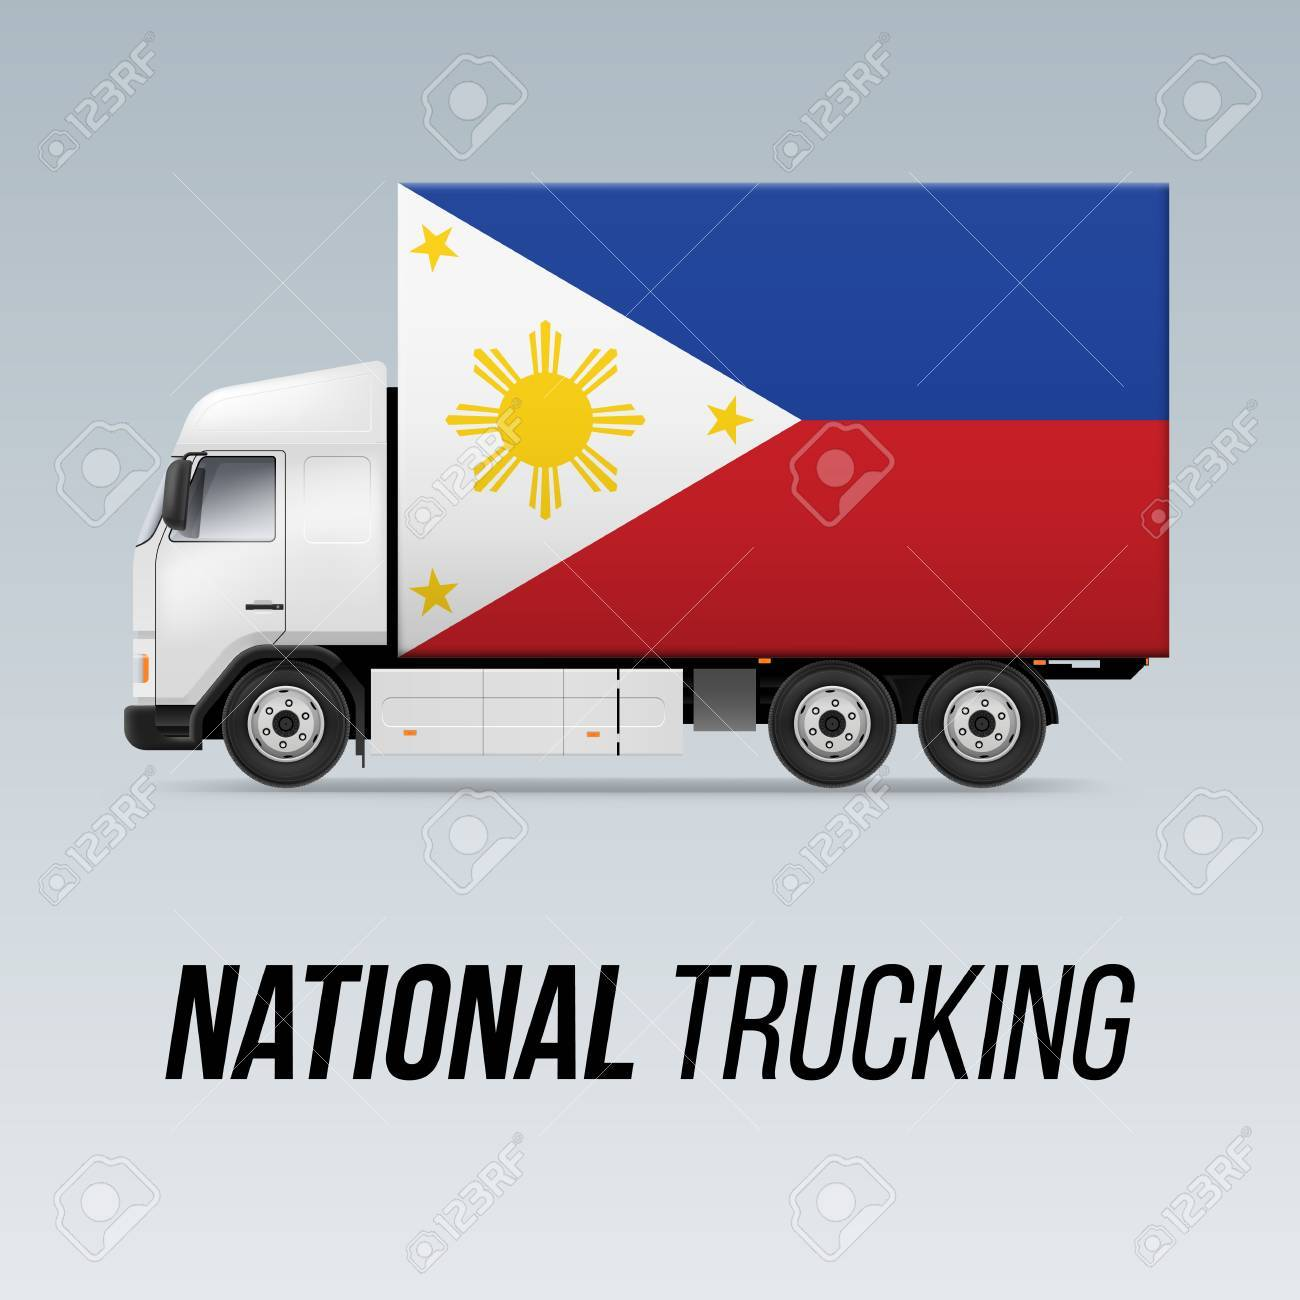 Symbol of national delivery truck with flag of philippines symbol of national delivery truck with flag of philippines national trucking icon and filipino flag buycottarizona Images